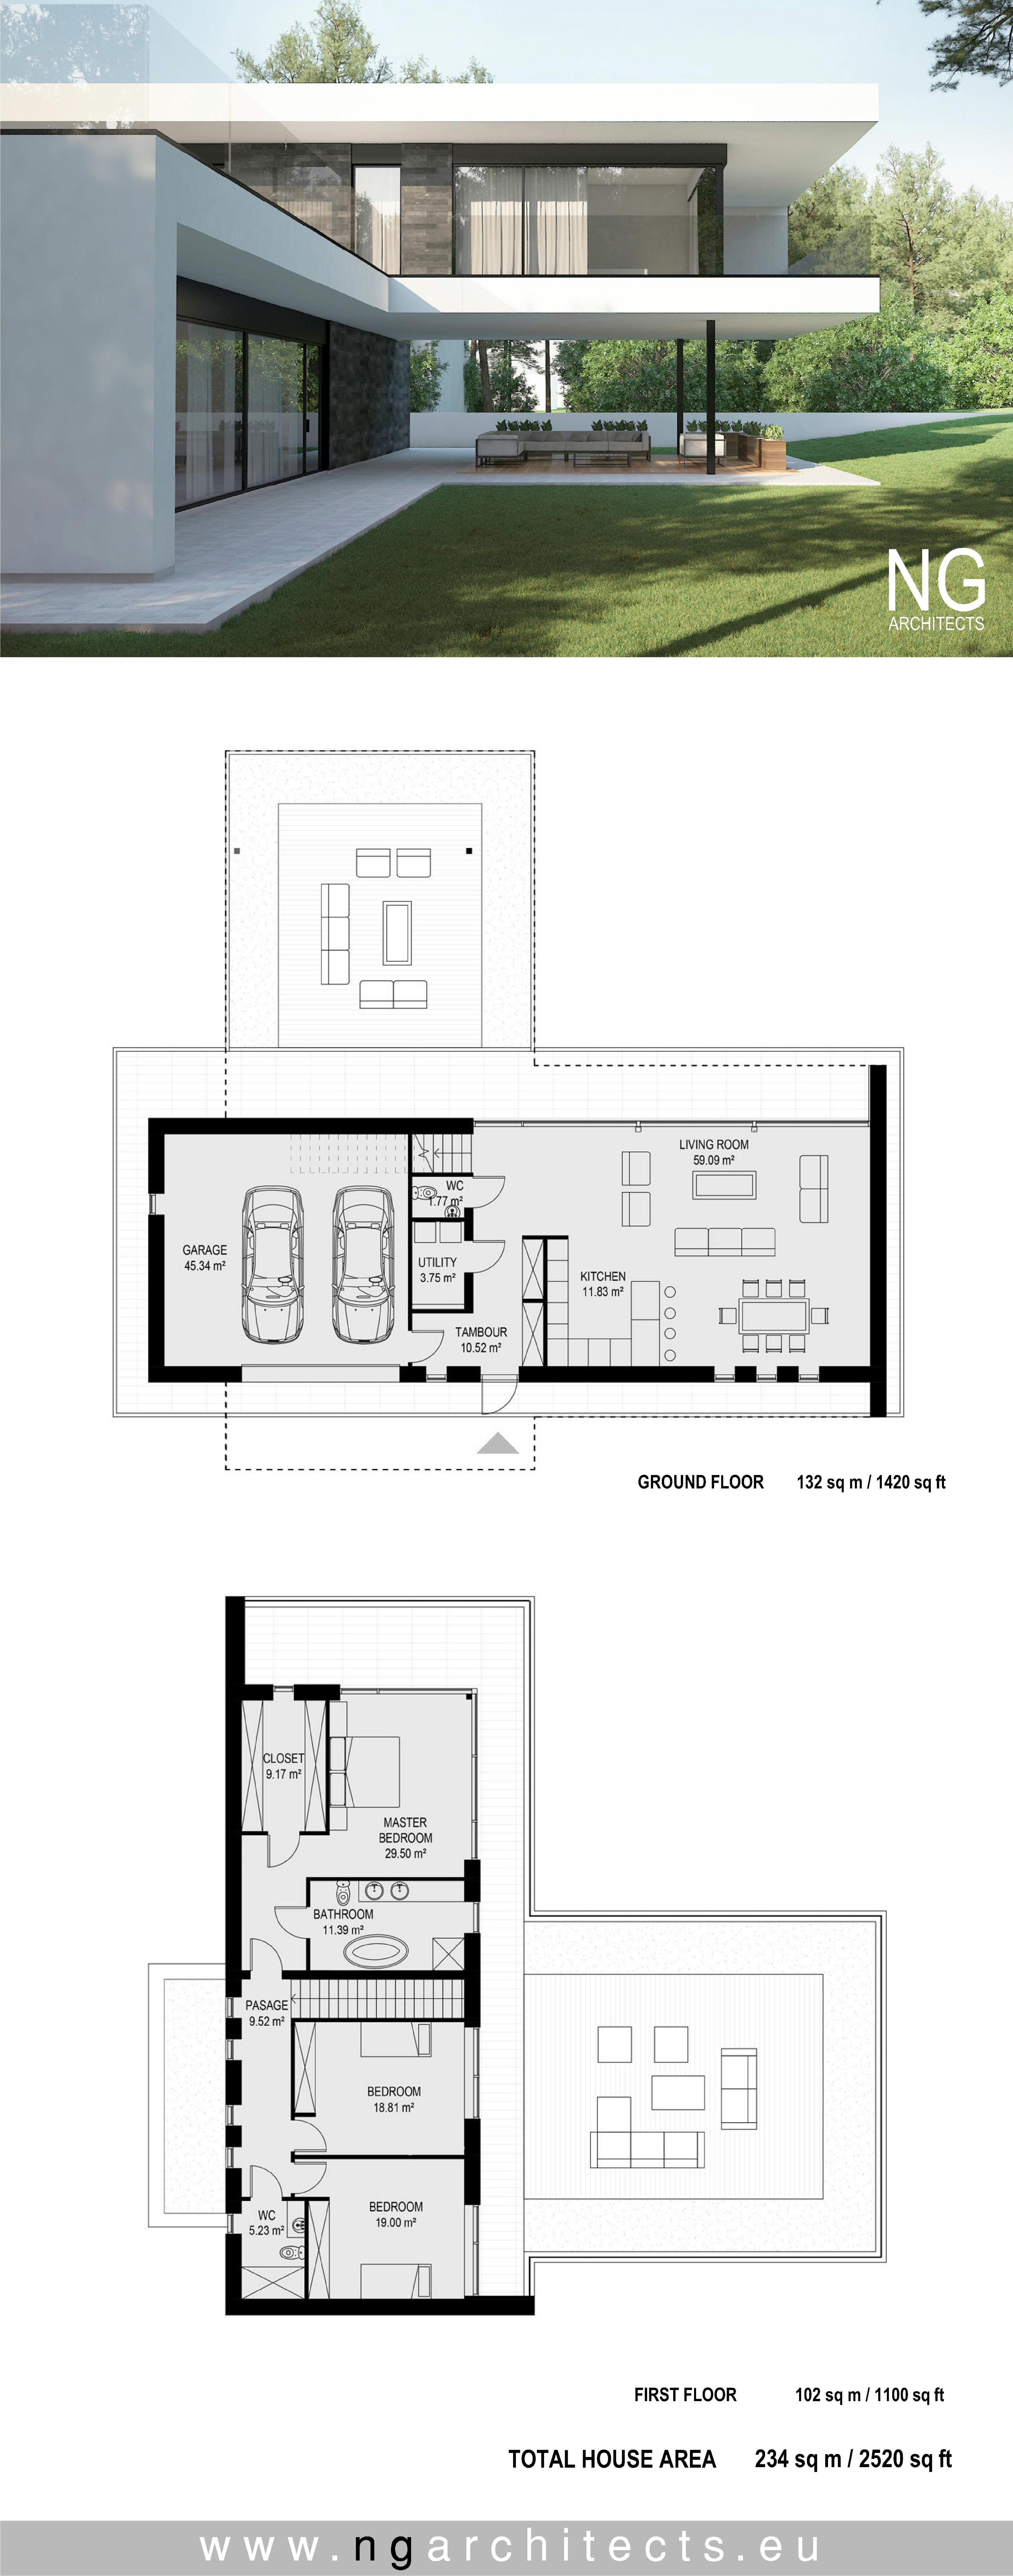 Modern house plan villa air designed by ng architects www ngarchitects eu